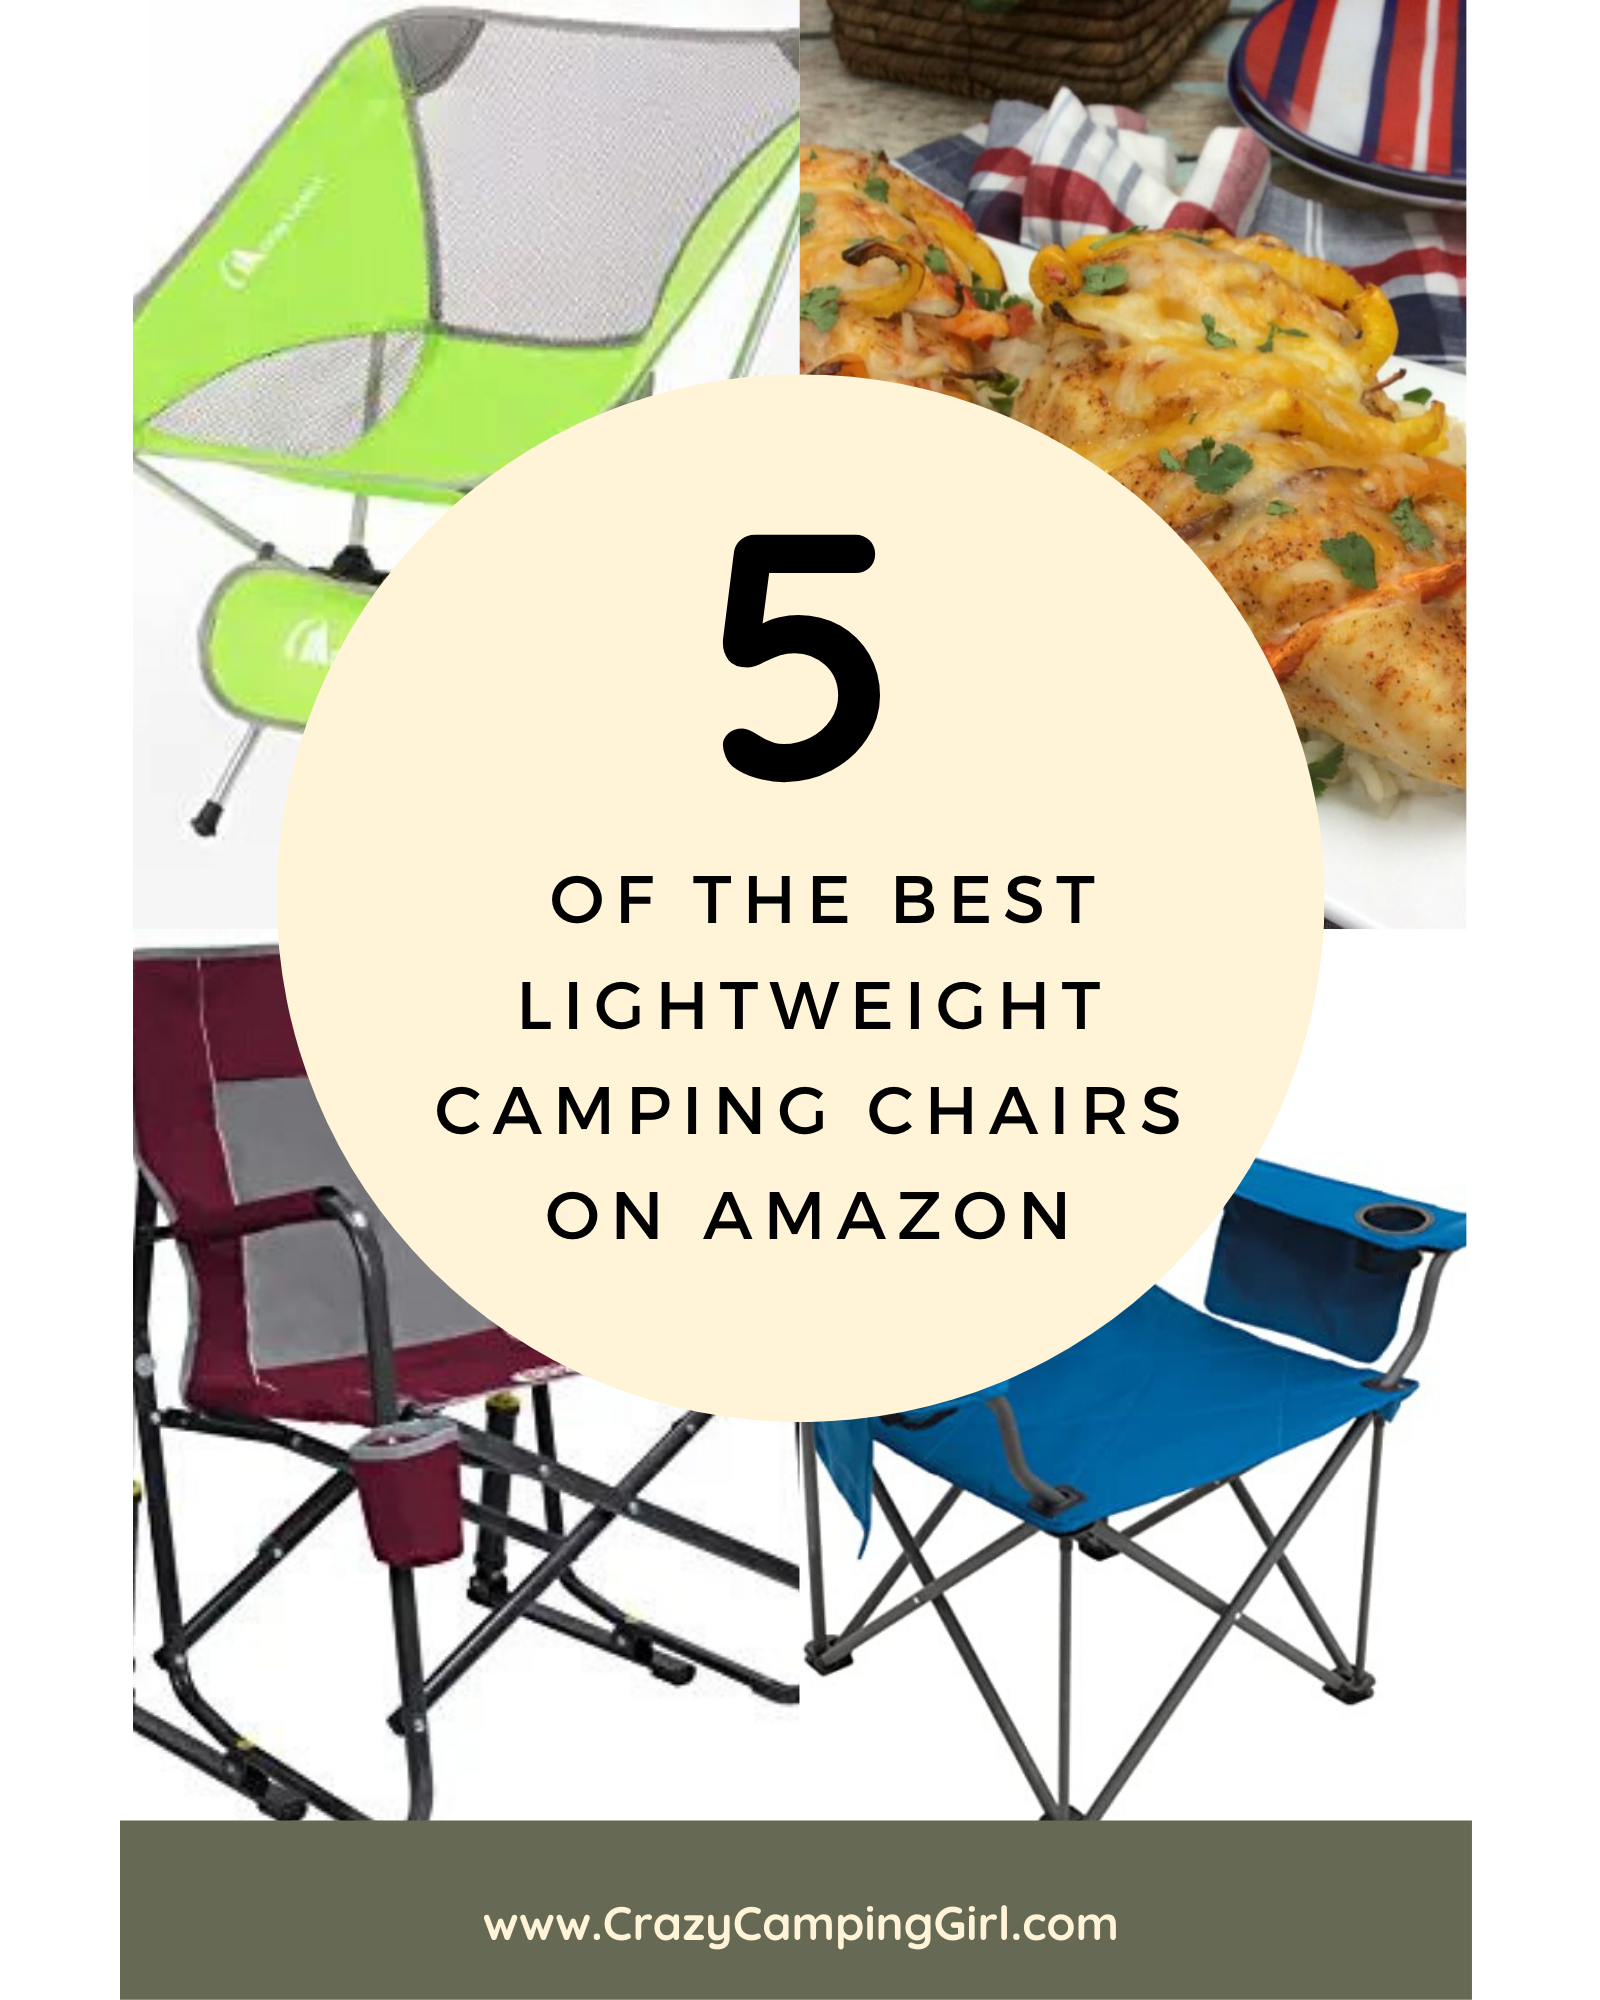 Best Lightweight Camping Chairs on Amazon